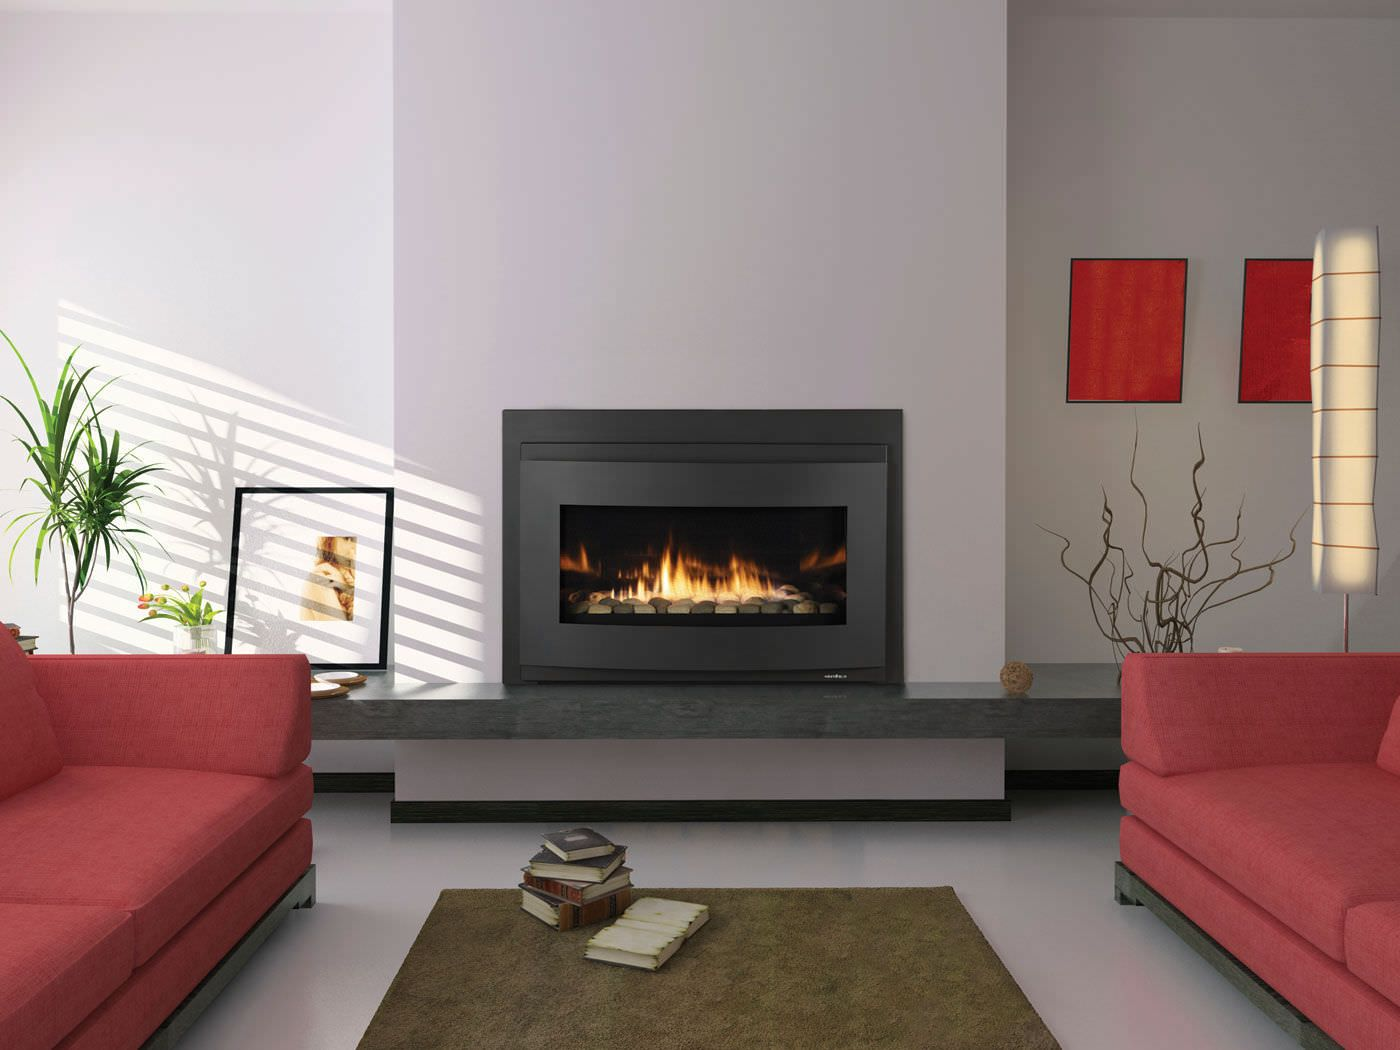 Amazing Living Room Design Have Gas Fireplace Repair Front Red Sectional Sofa Around White Stained Wall Design White